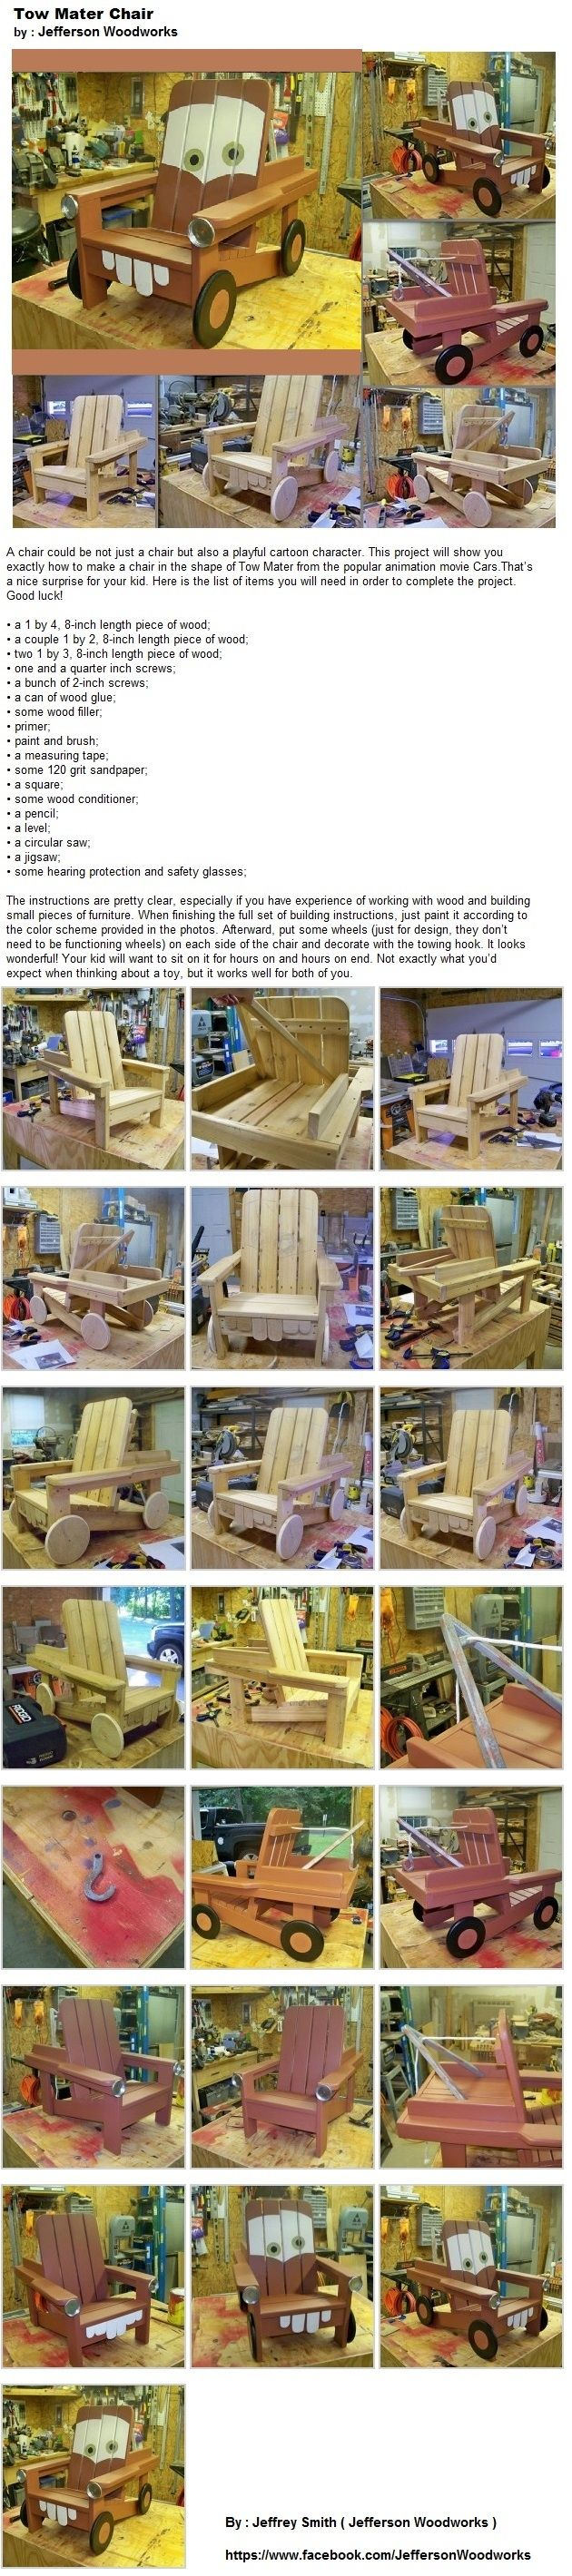 We are making these right here in Edmonton Alberta. Check out our Facebook page www.facebook.com/MadeWithLoveRestoration. Pictures c/oTow Mater Chair by Jeffrey Smith